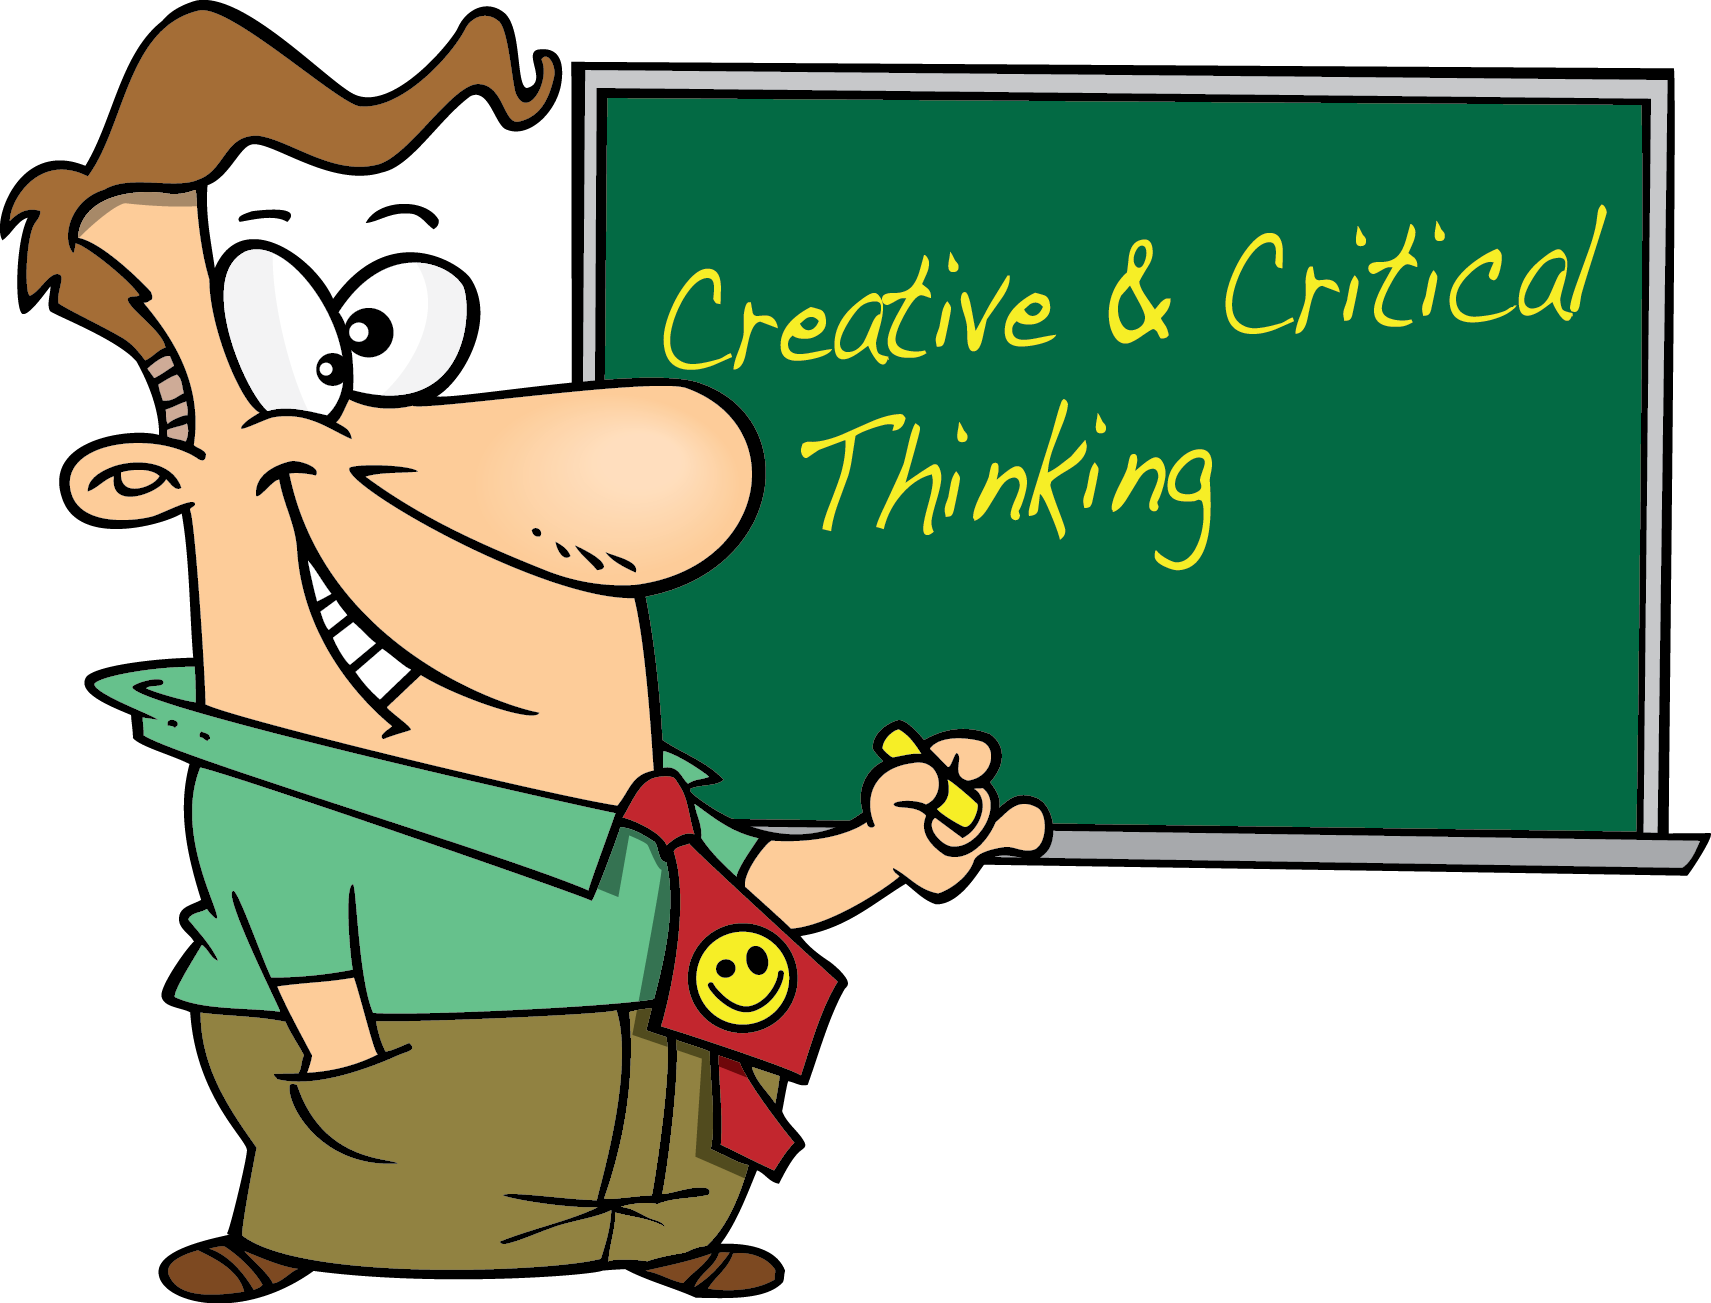 Conclusion clipart critical analysis. Concise learning creative and